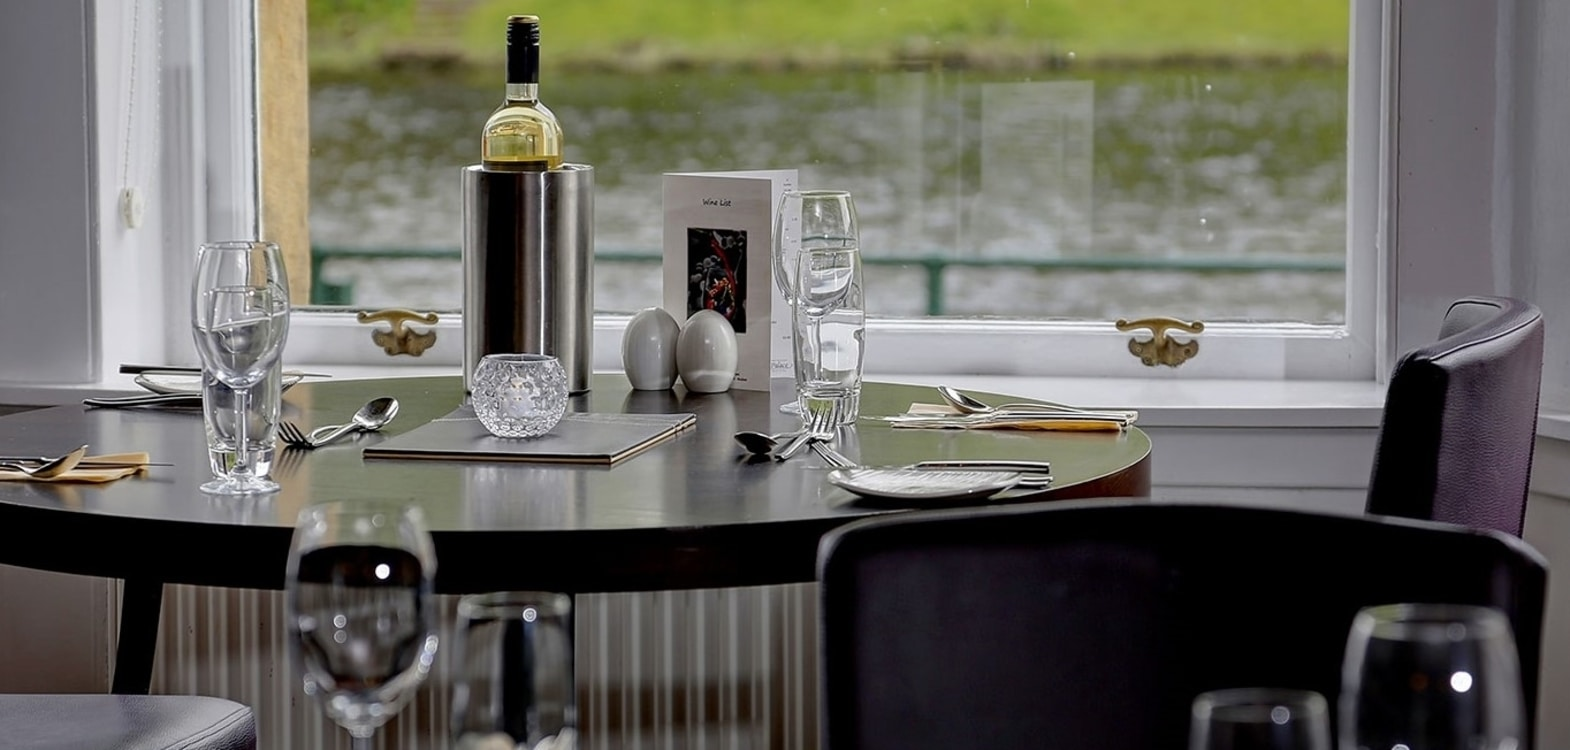 A black round dining table with a bottle of wine and glasses all set up ready for dinner guests